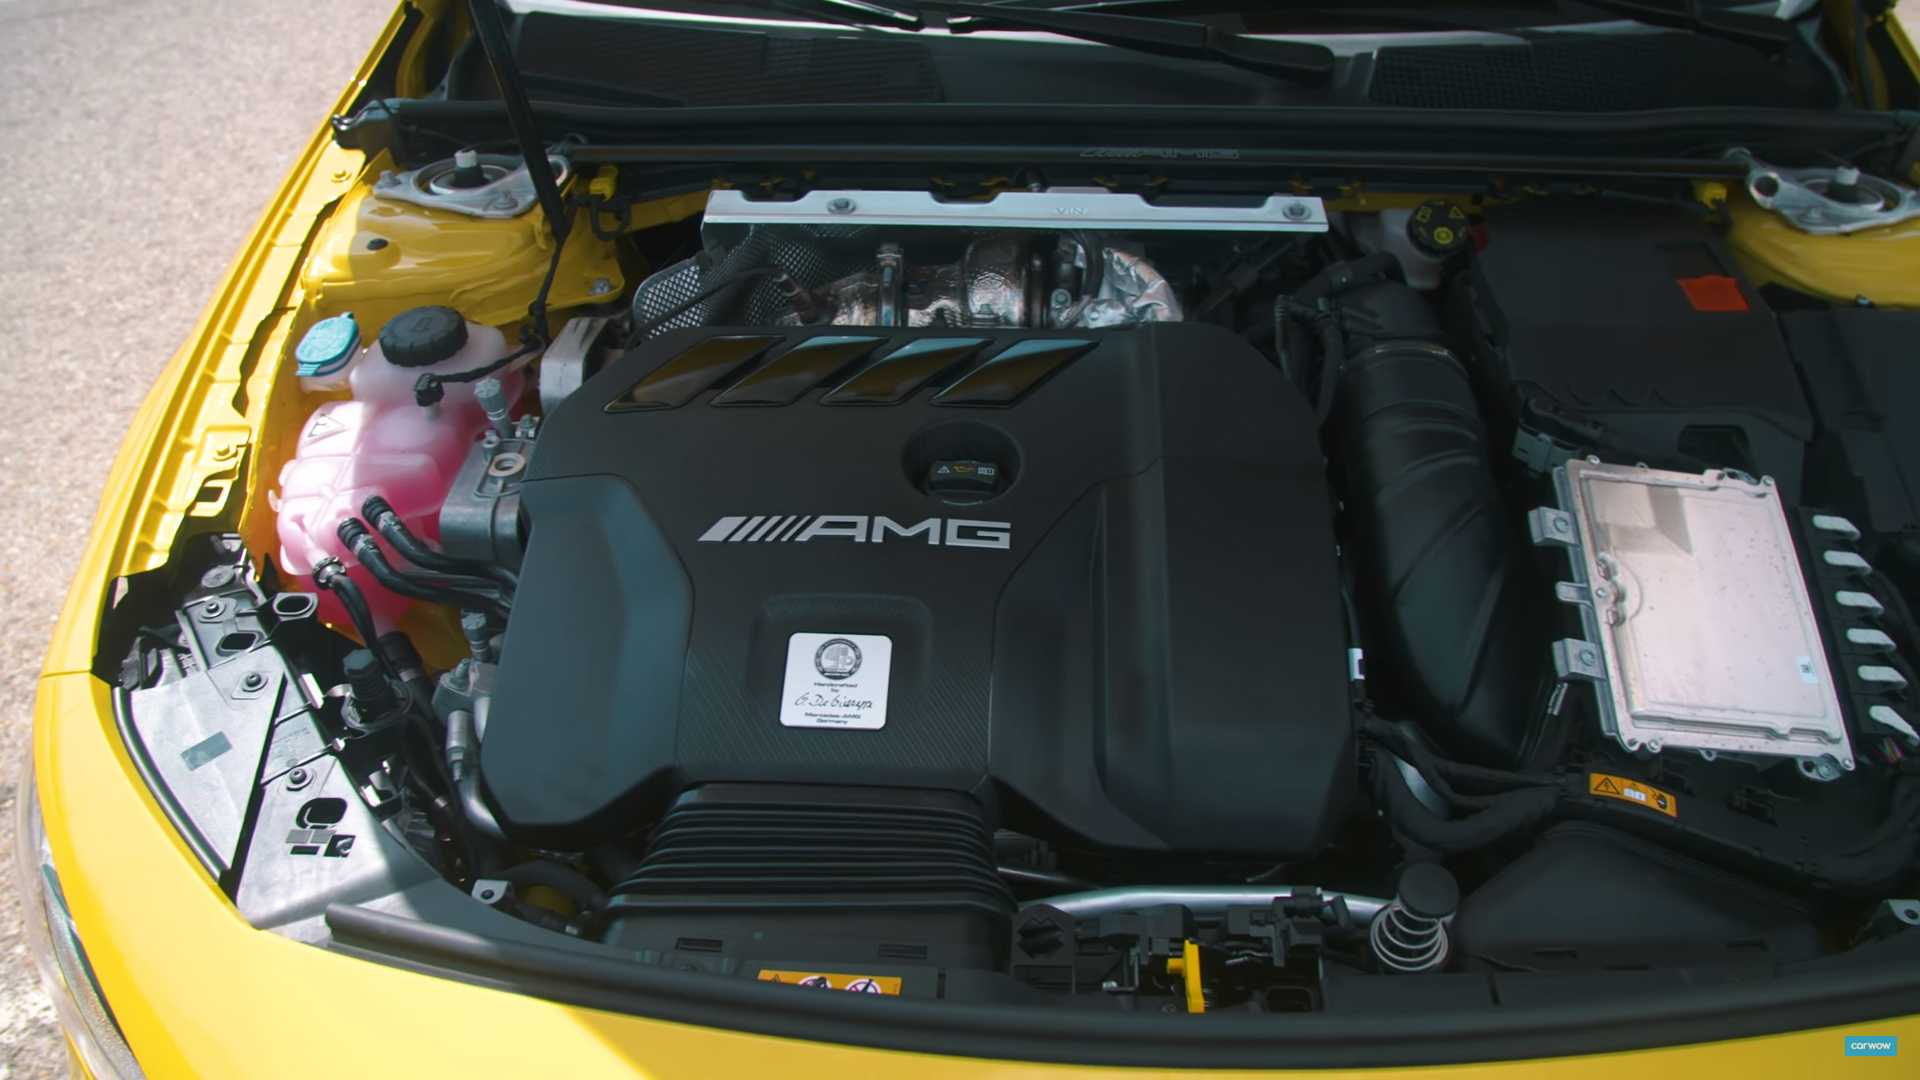 Mercedes-AMG A45 421-HP Engine Could Be Introduced For Larger Models